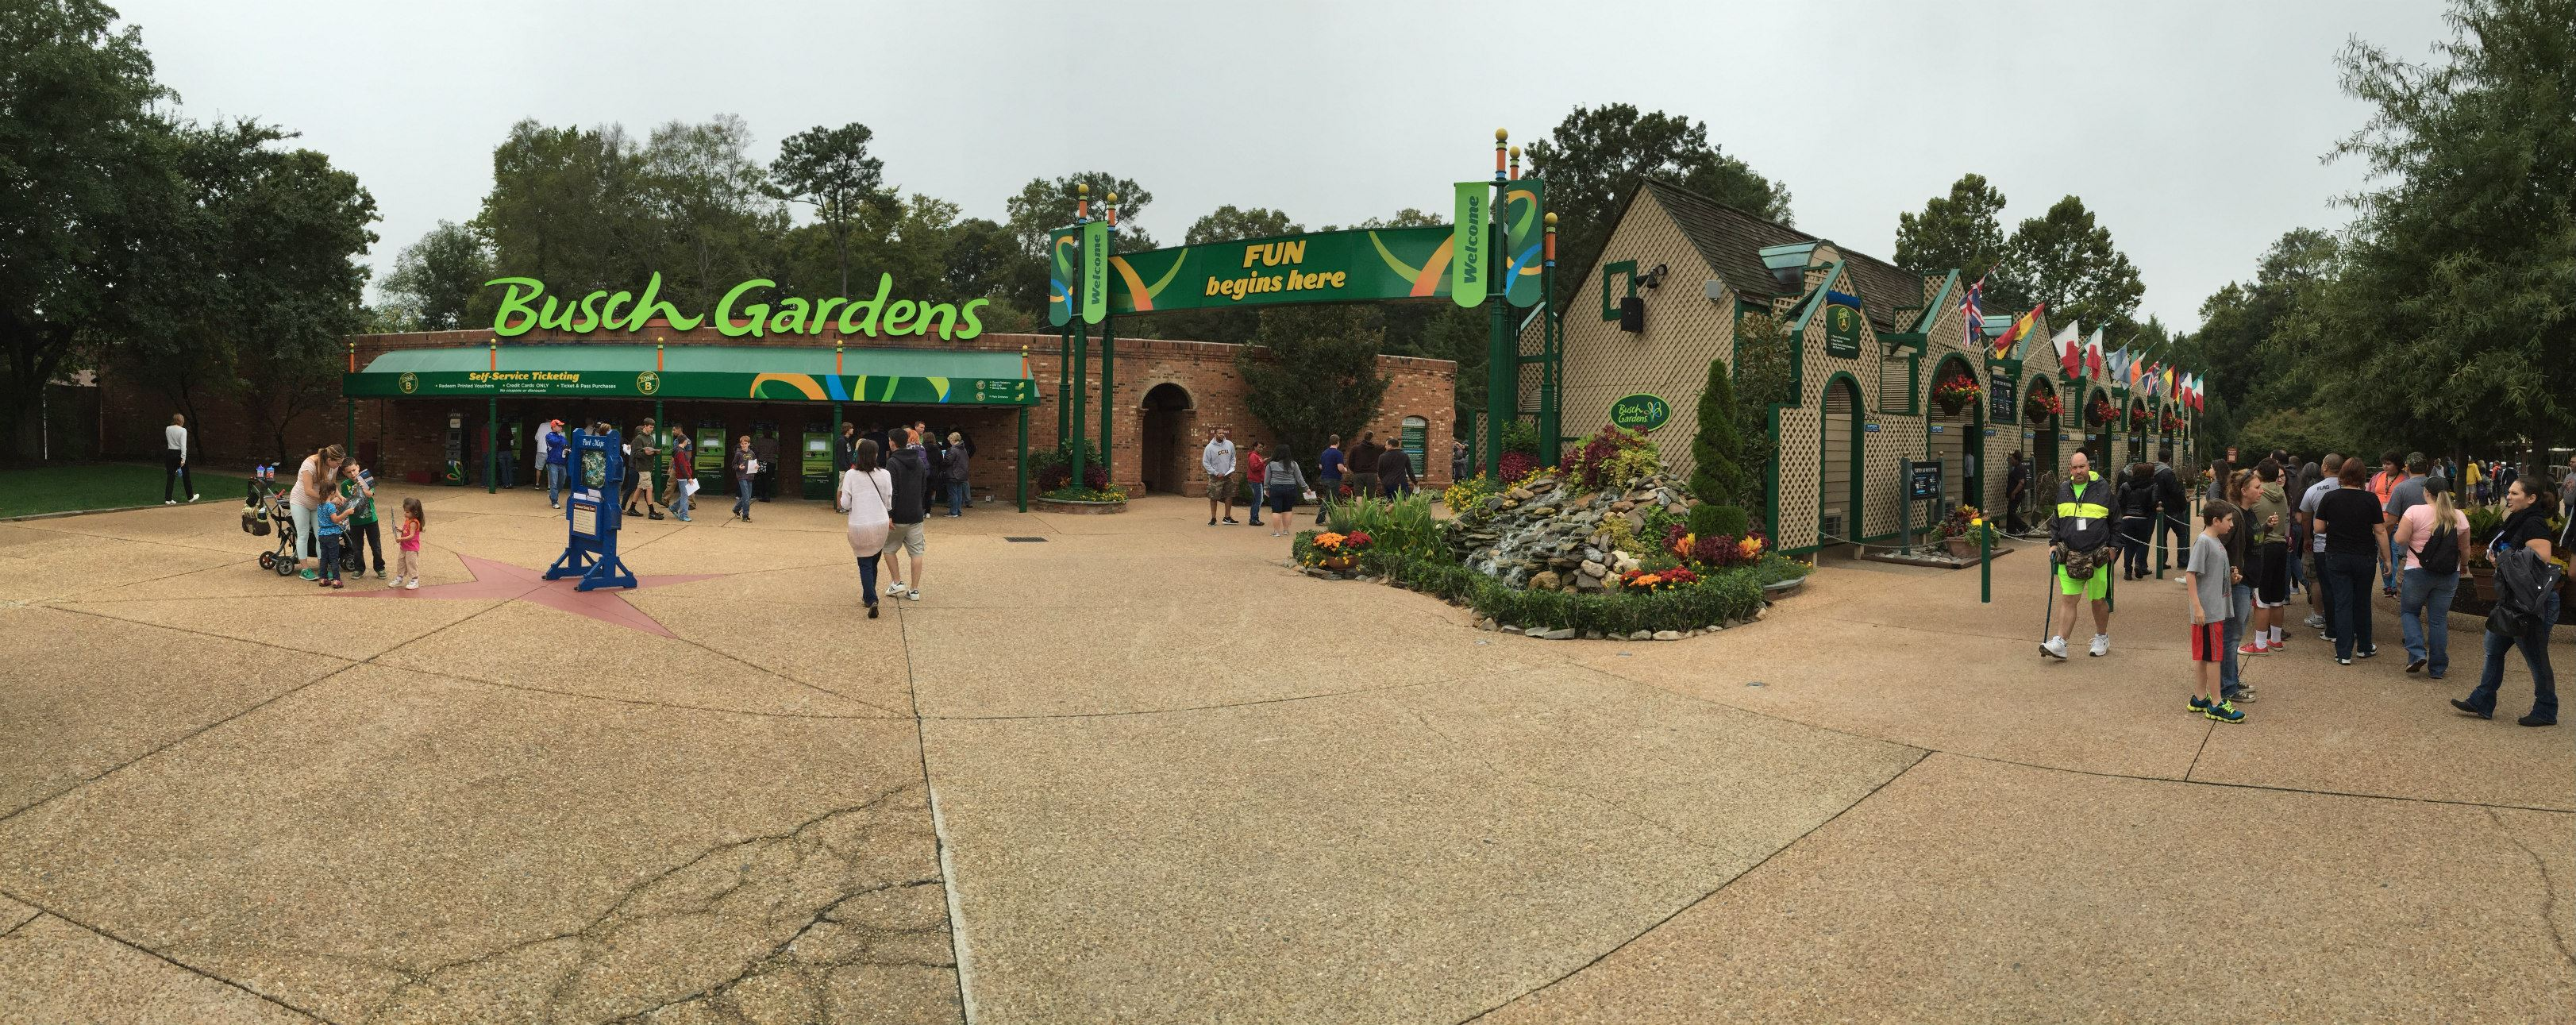 Busch Gardens Williamsburg is a must-see park